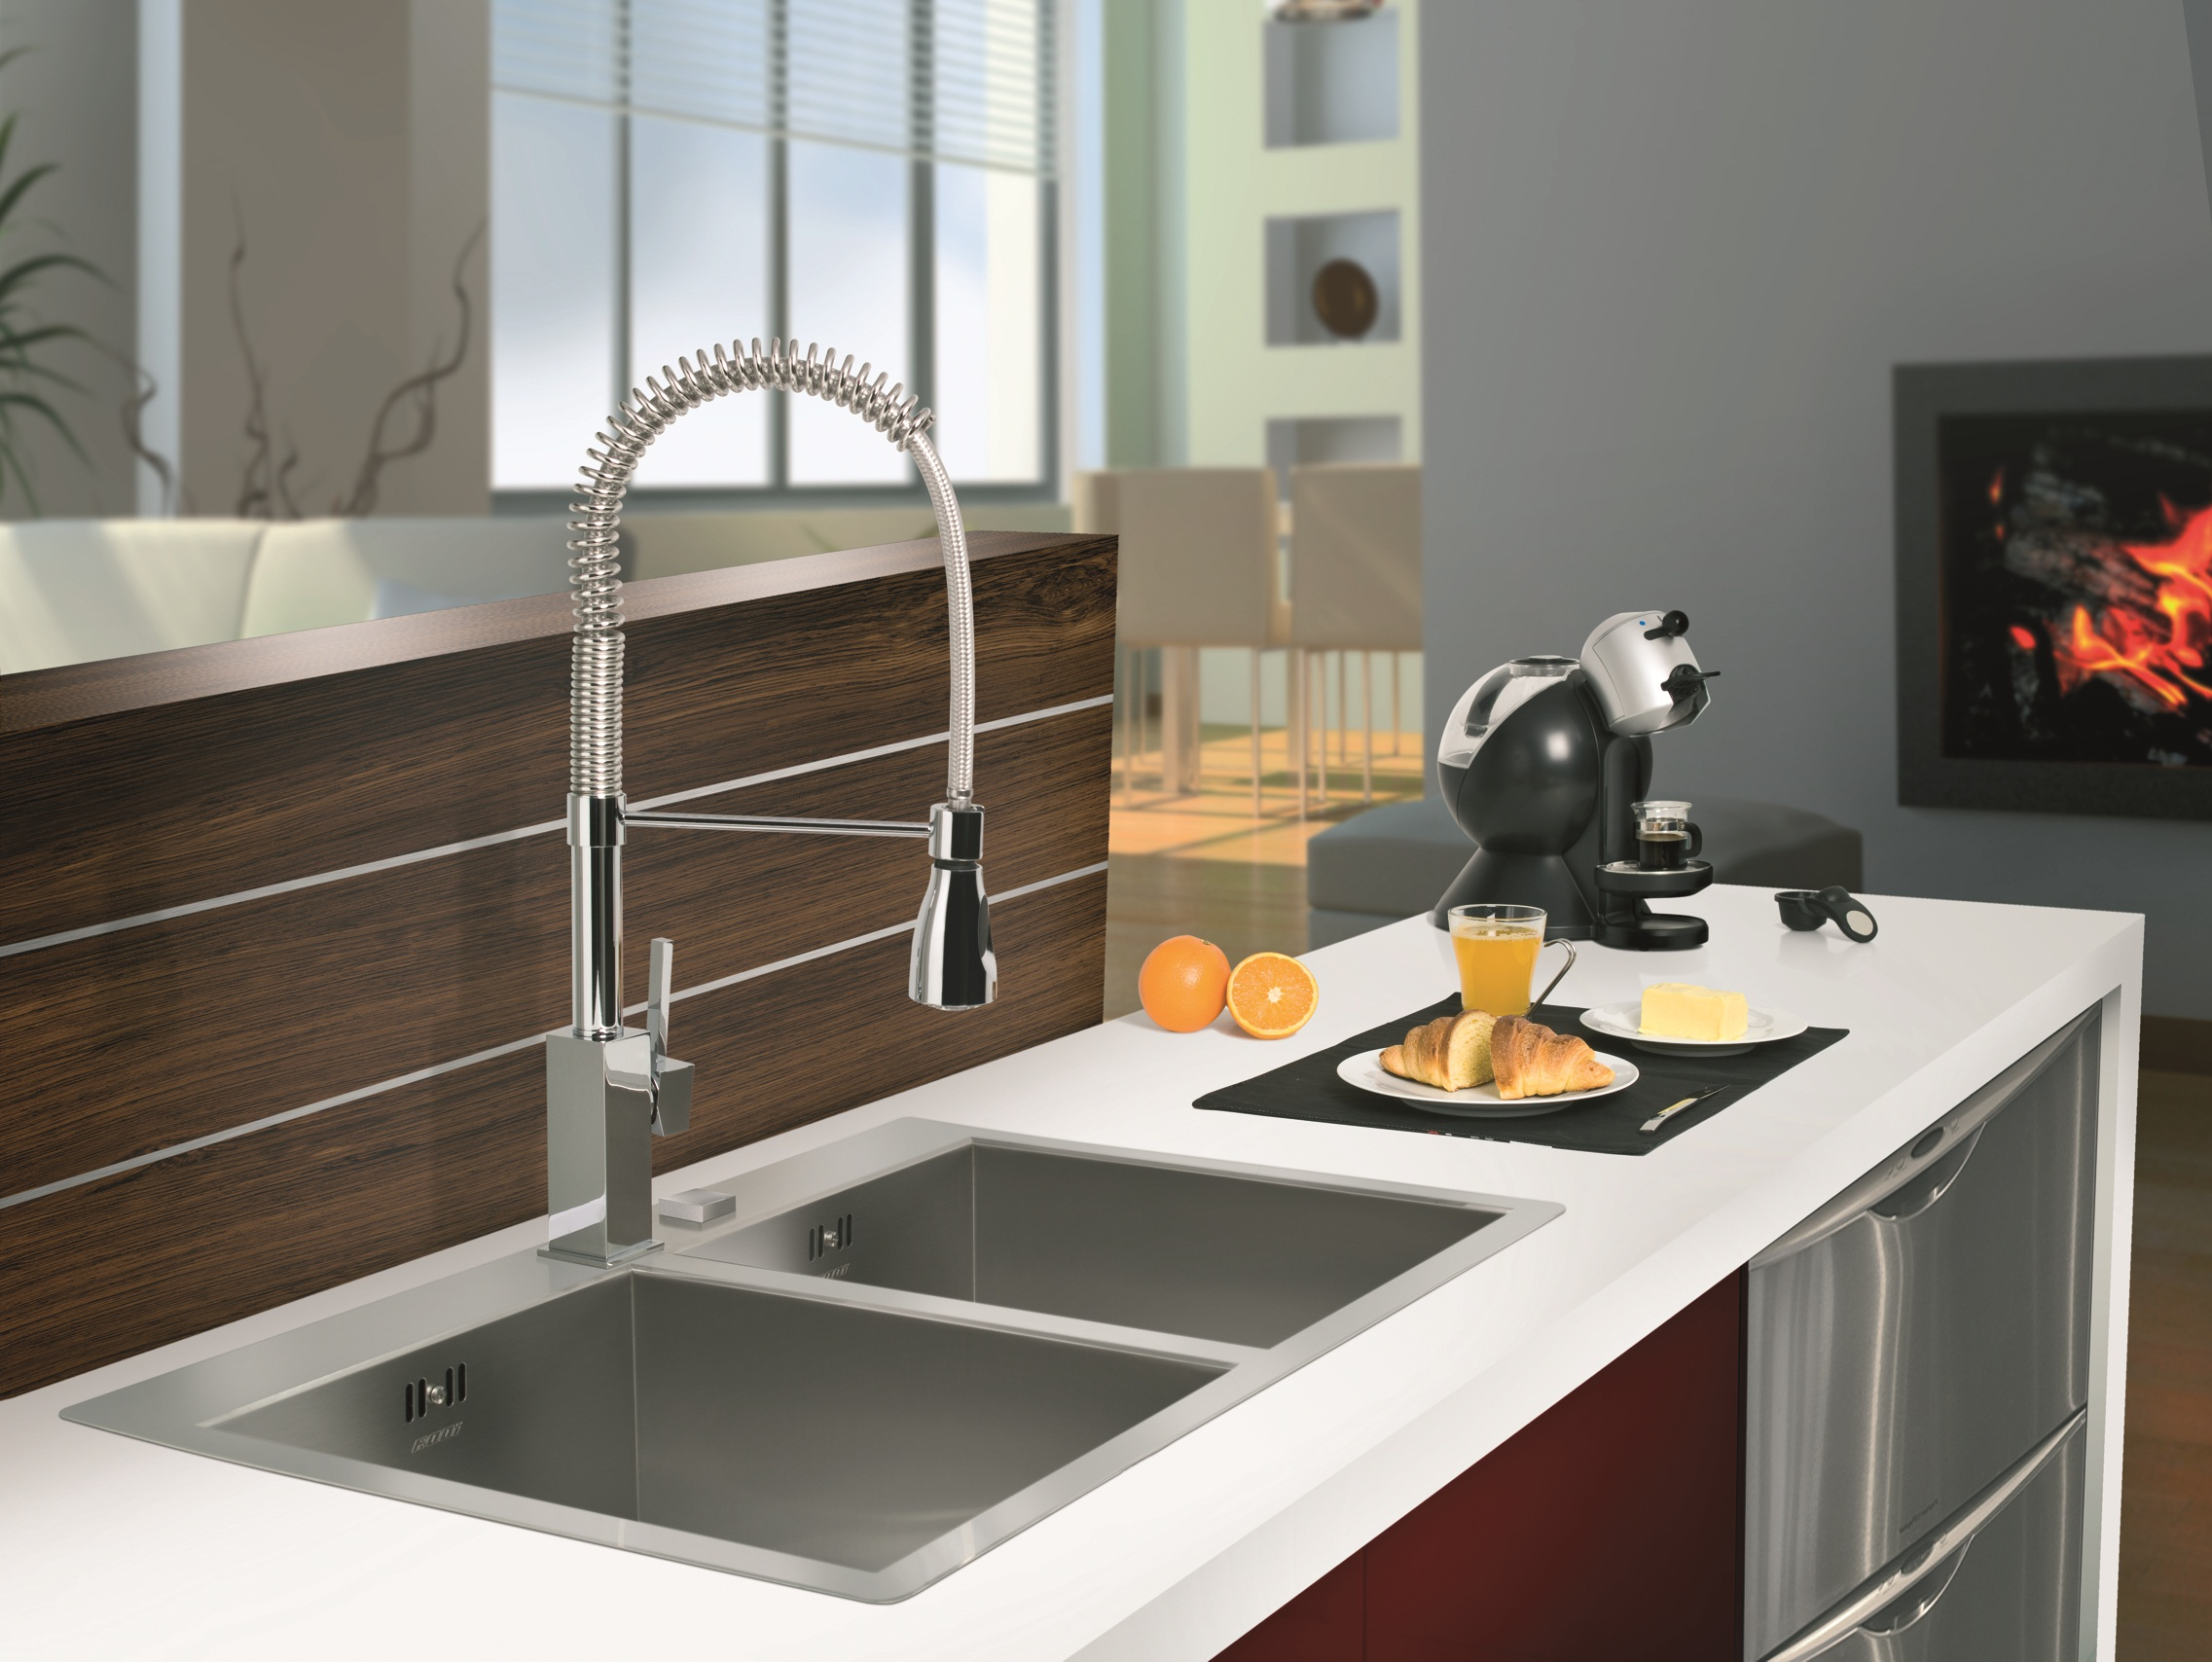 Sinks BOXER 755 DUO FI 1,2mm